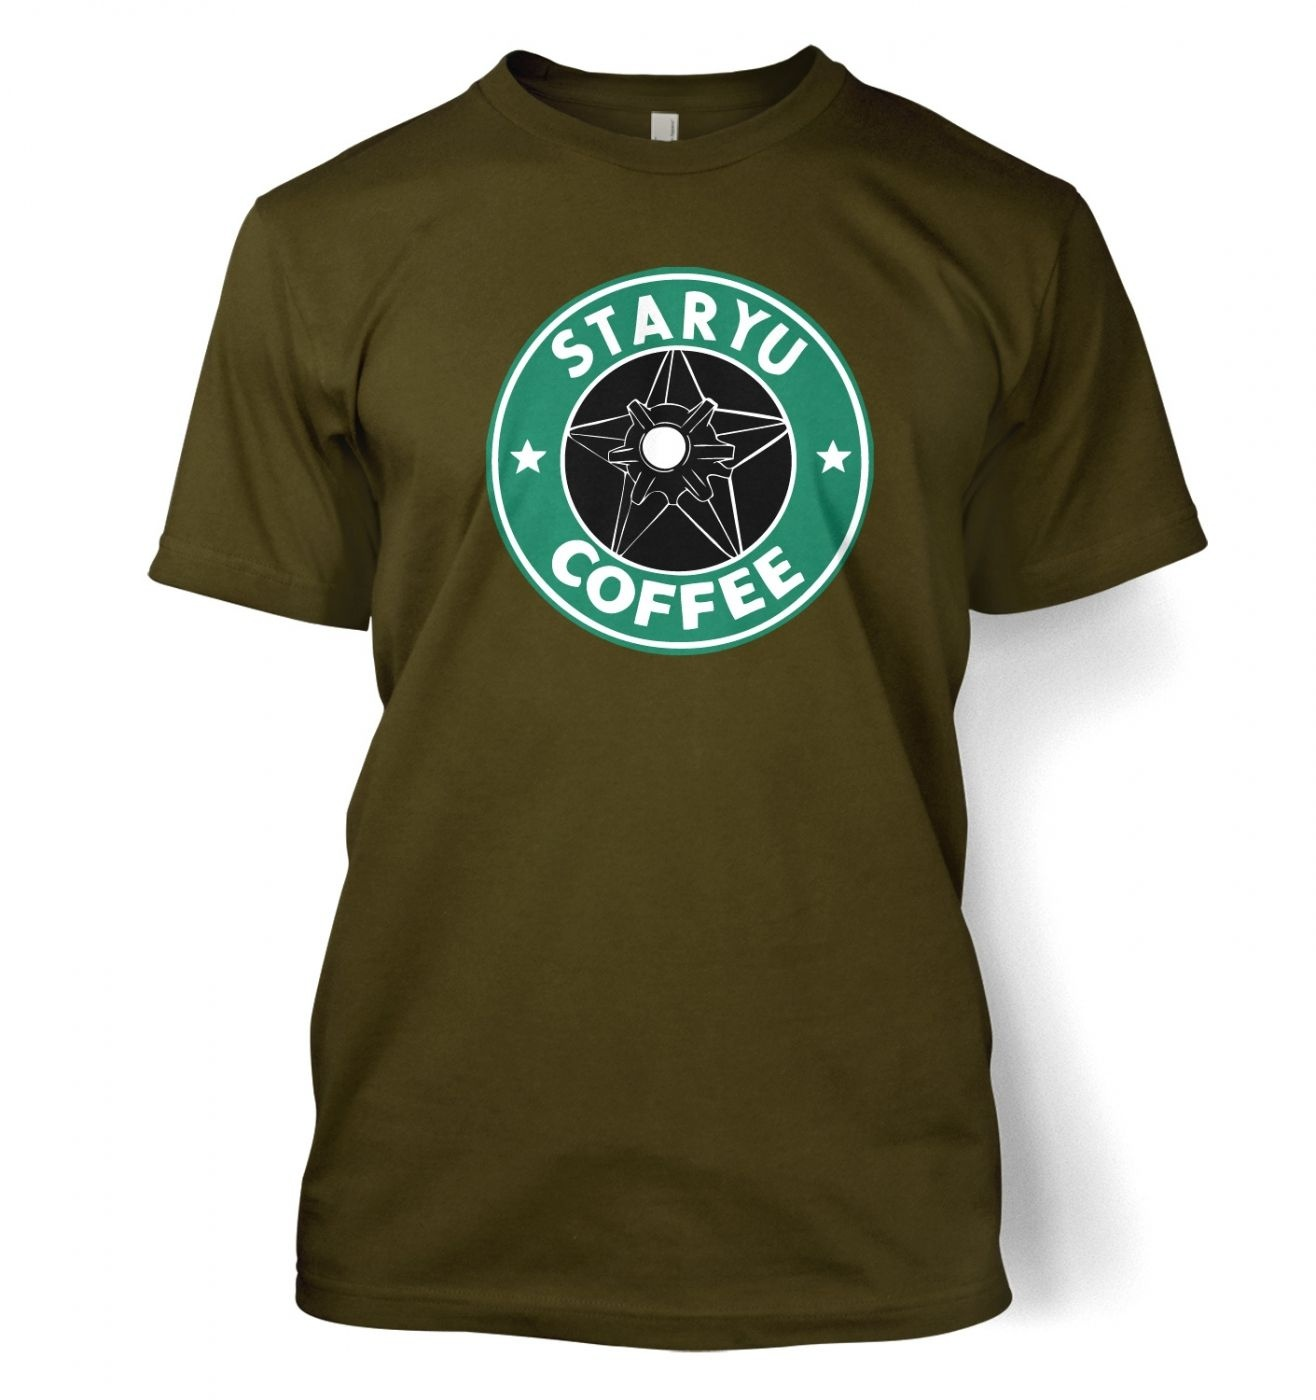 Staryu Coffee T-Shirt - Inspired by Pokemon